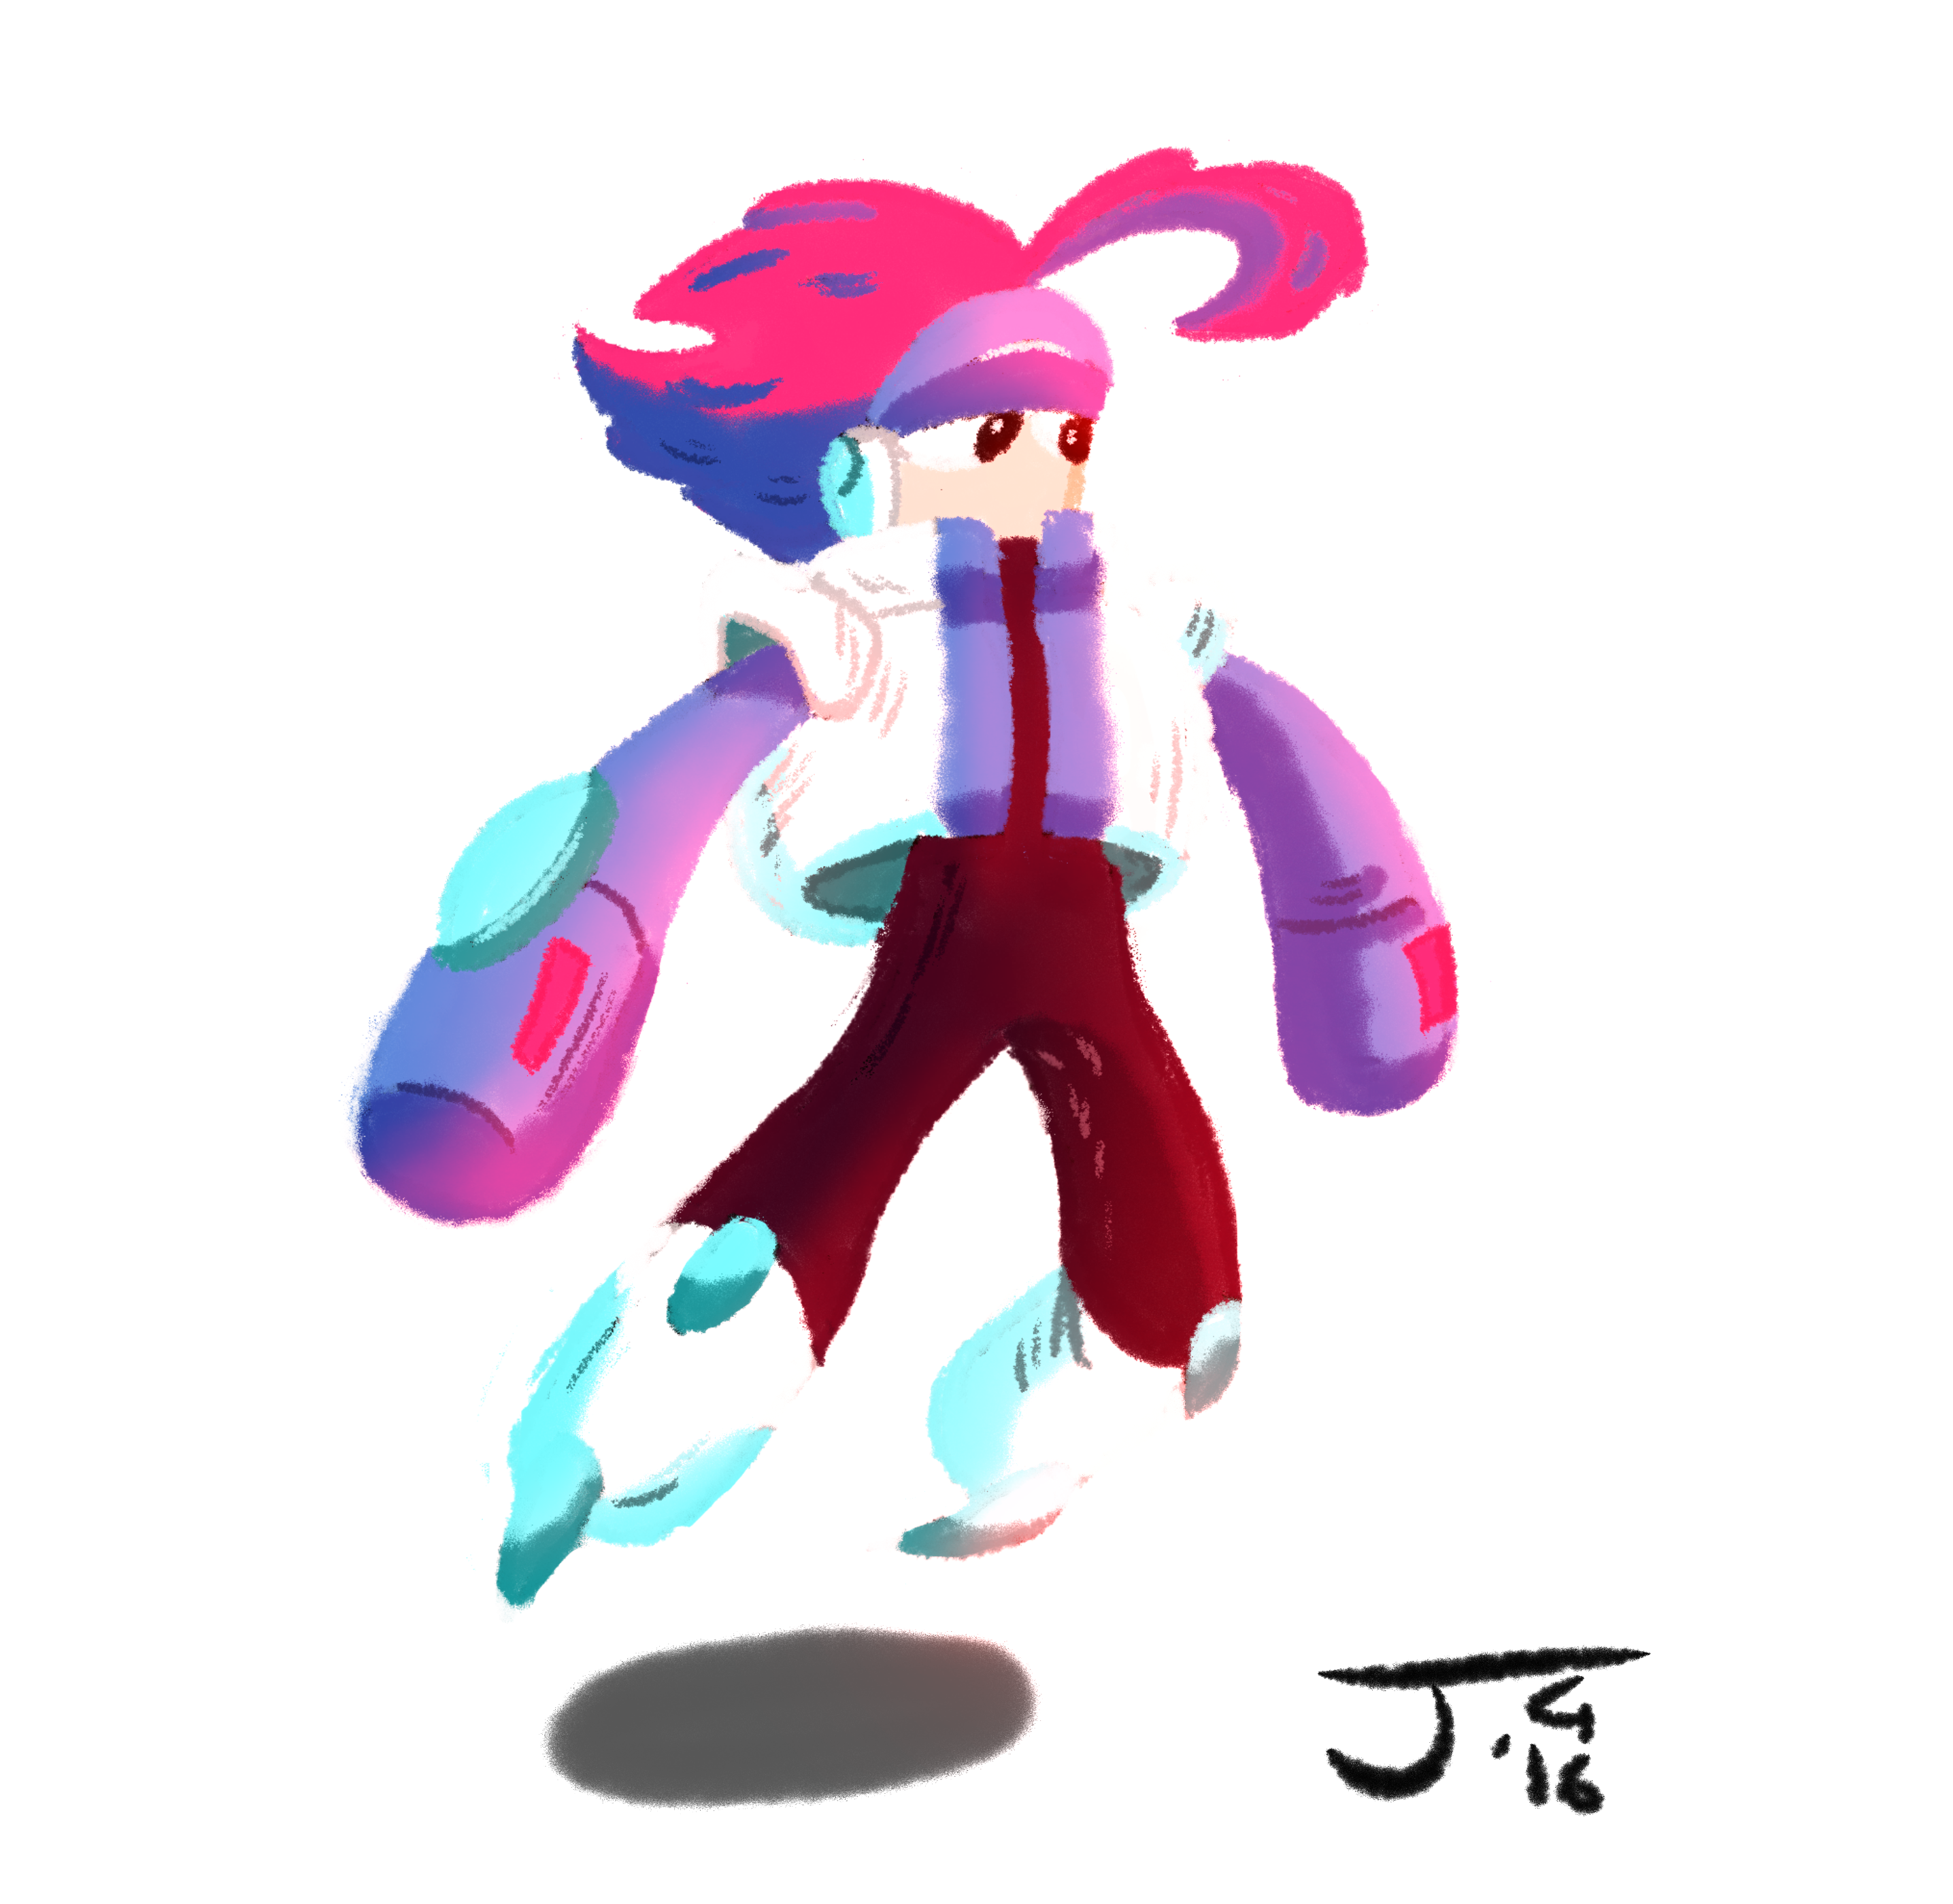 a painting of Egoraptor's character. idk his name.